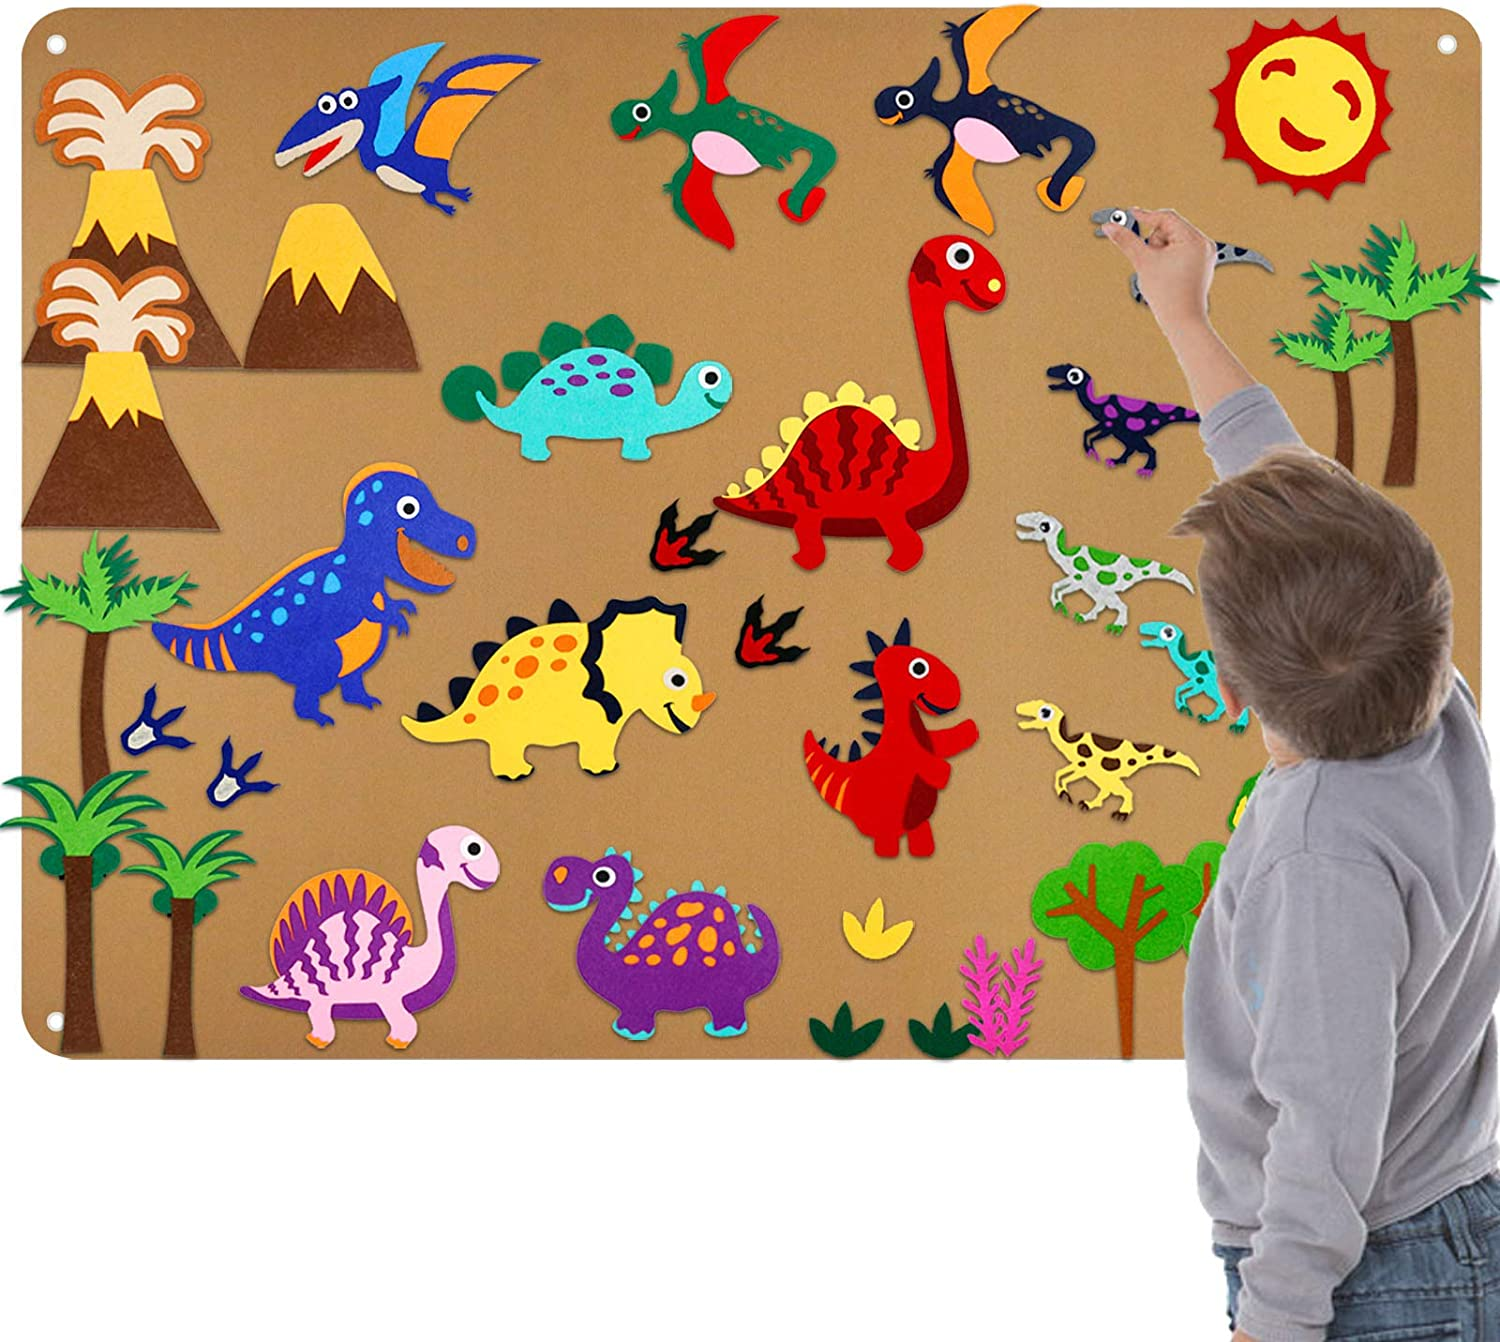 Felt Flannel-Board Stories Set for Toddlers Preschool, Dinosaur Toy Gifts for Kids, Large Wall Hang Activity Storyboard